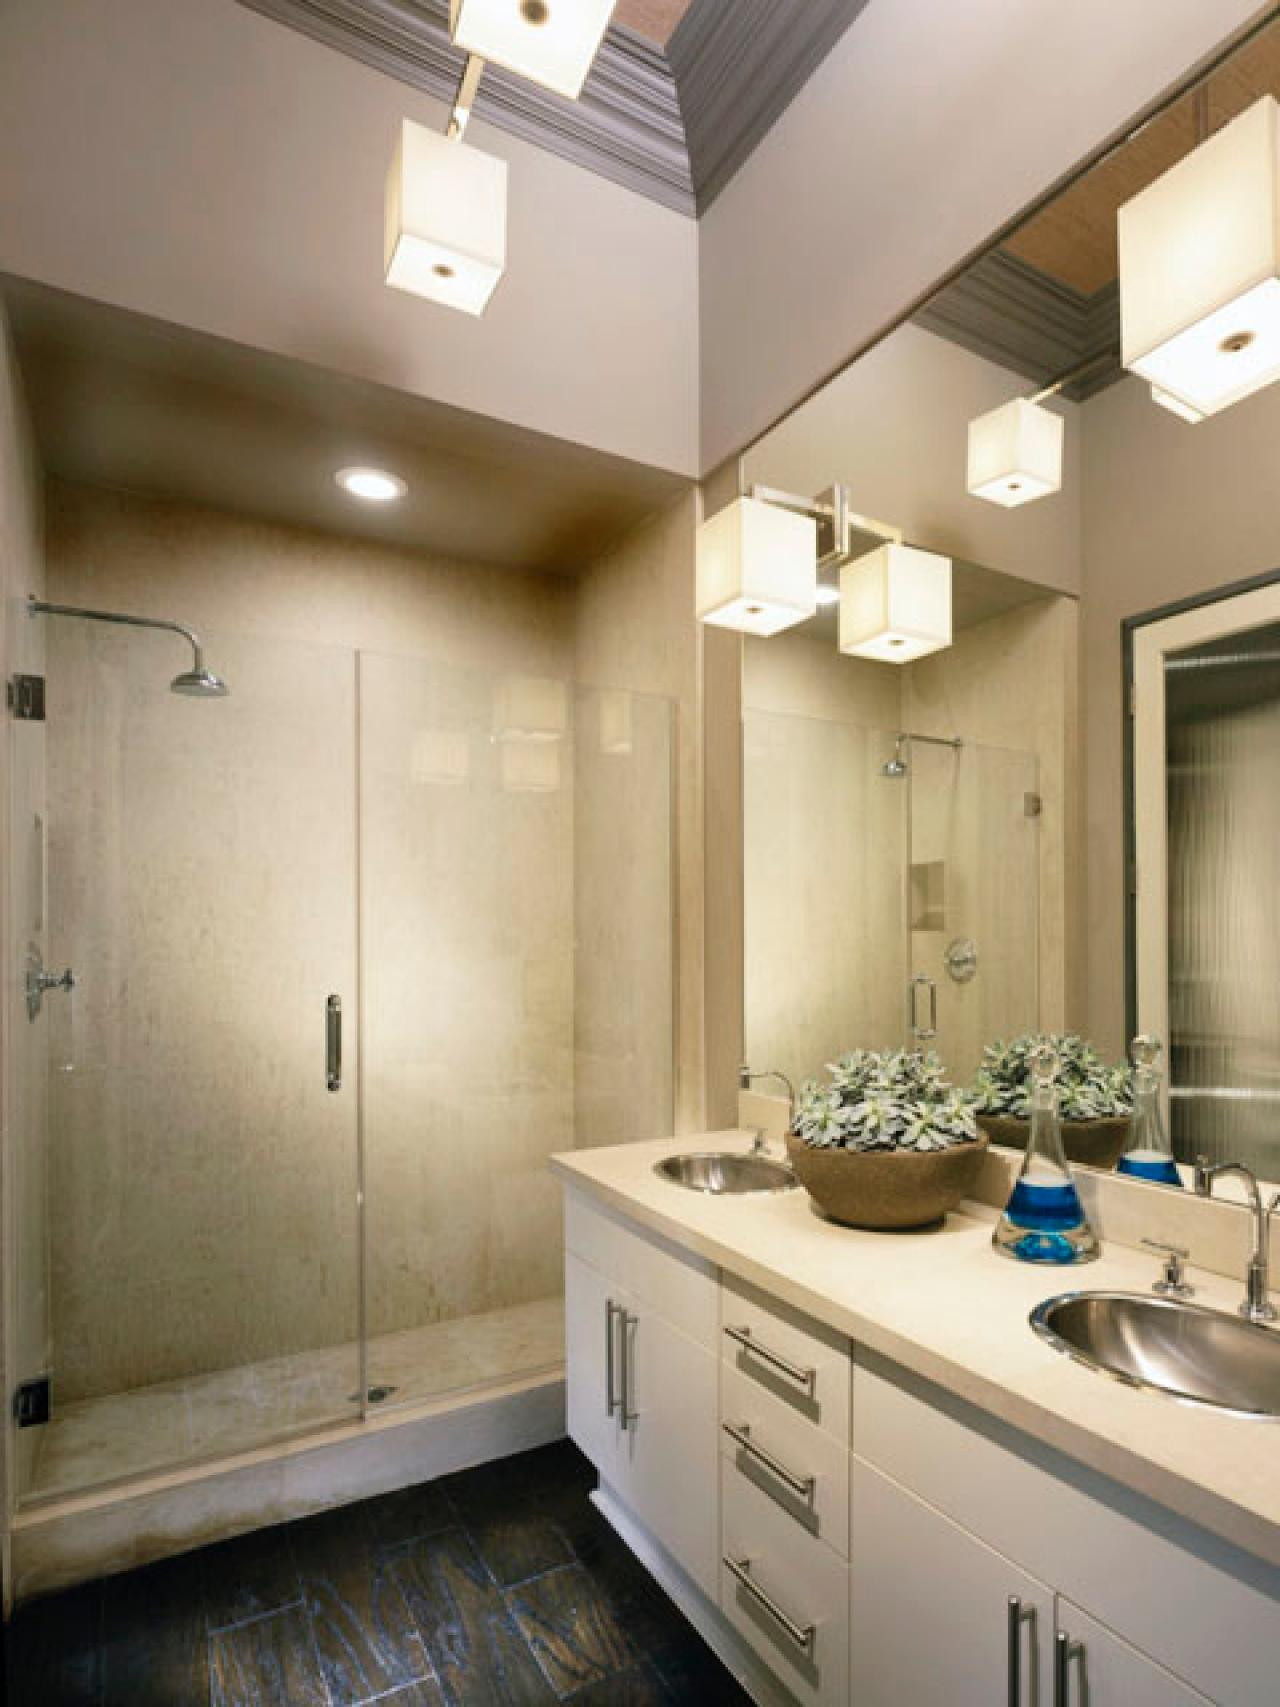 ideal bathroom vanity lighting design ideas. Vanity Lighting Design. Design Hgtv.com Ideal Bathroom Ideas B